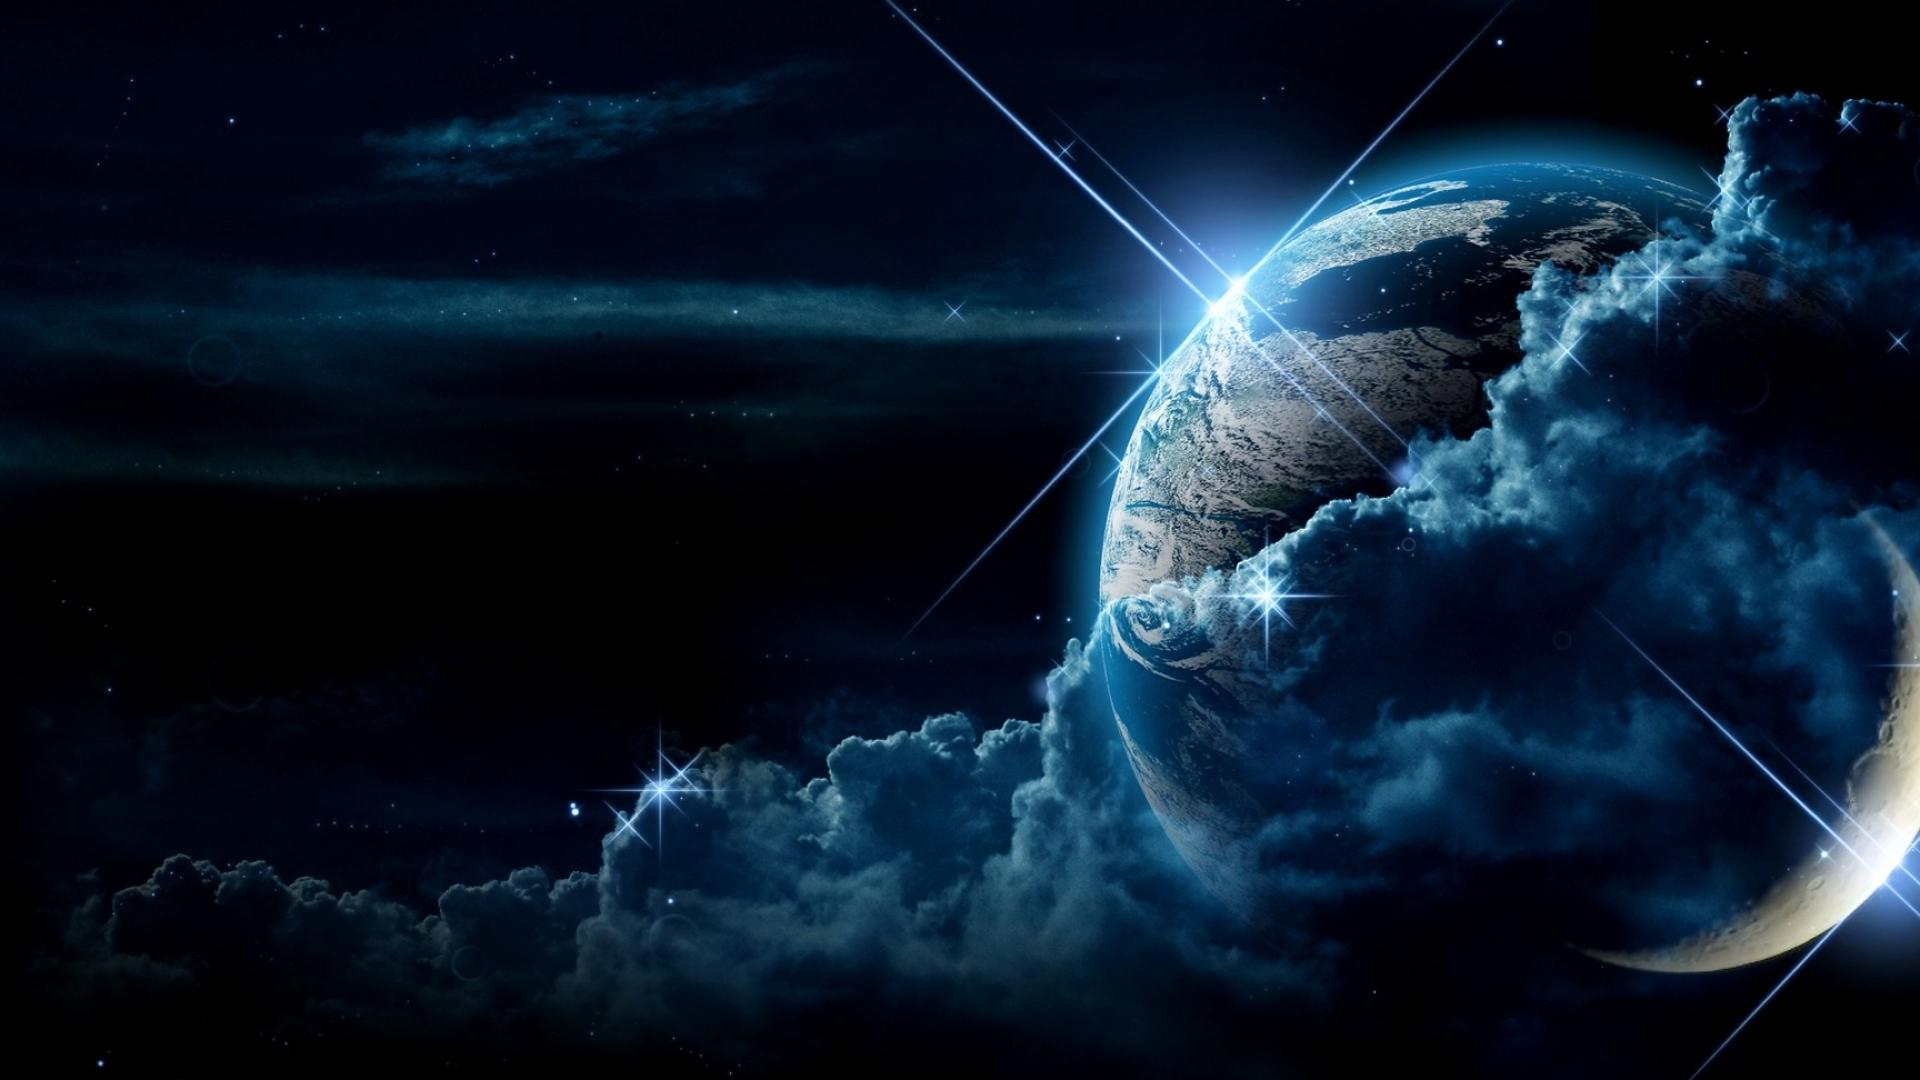 Earth Wallpapers From Spacespace Cool Pictures Background Hd Wallpaper Of Space 7etq6lm4